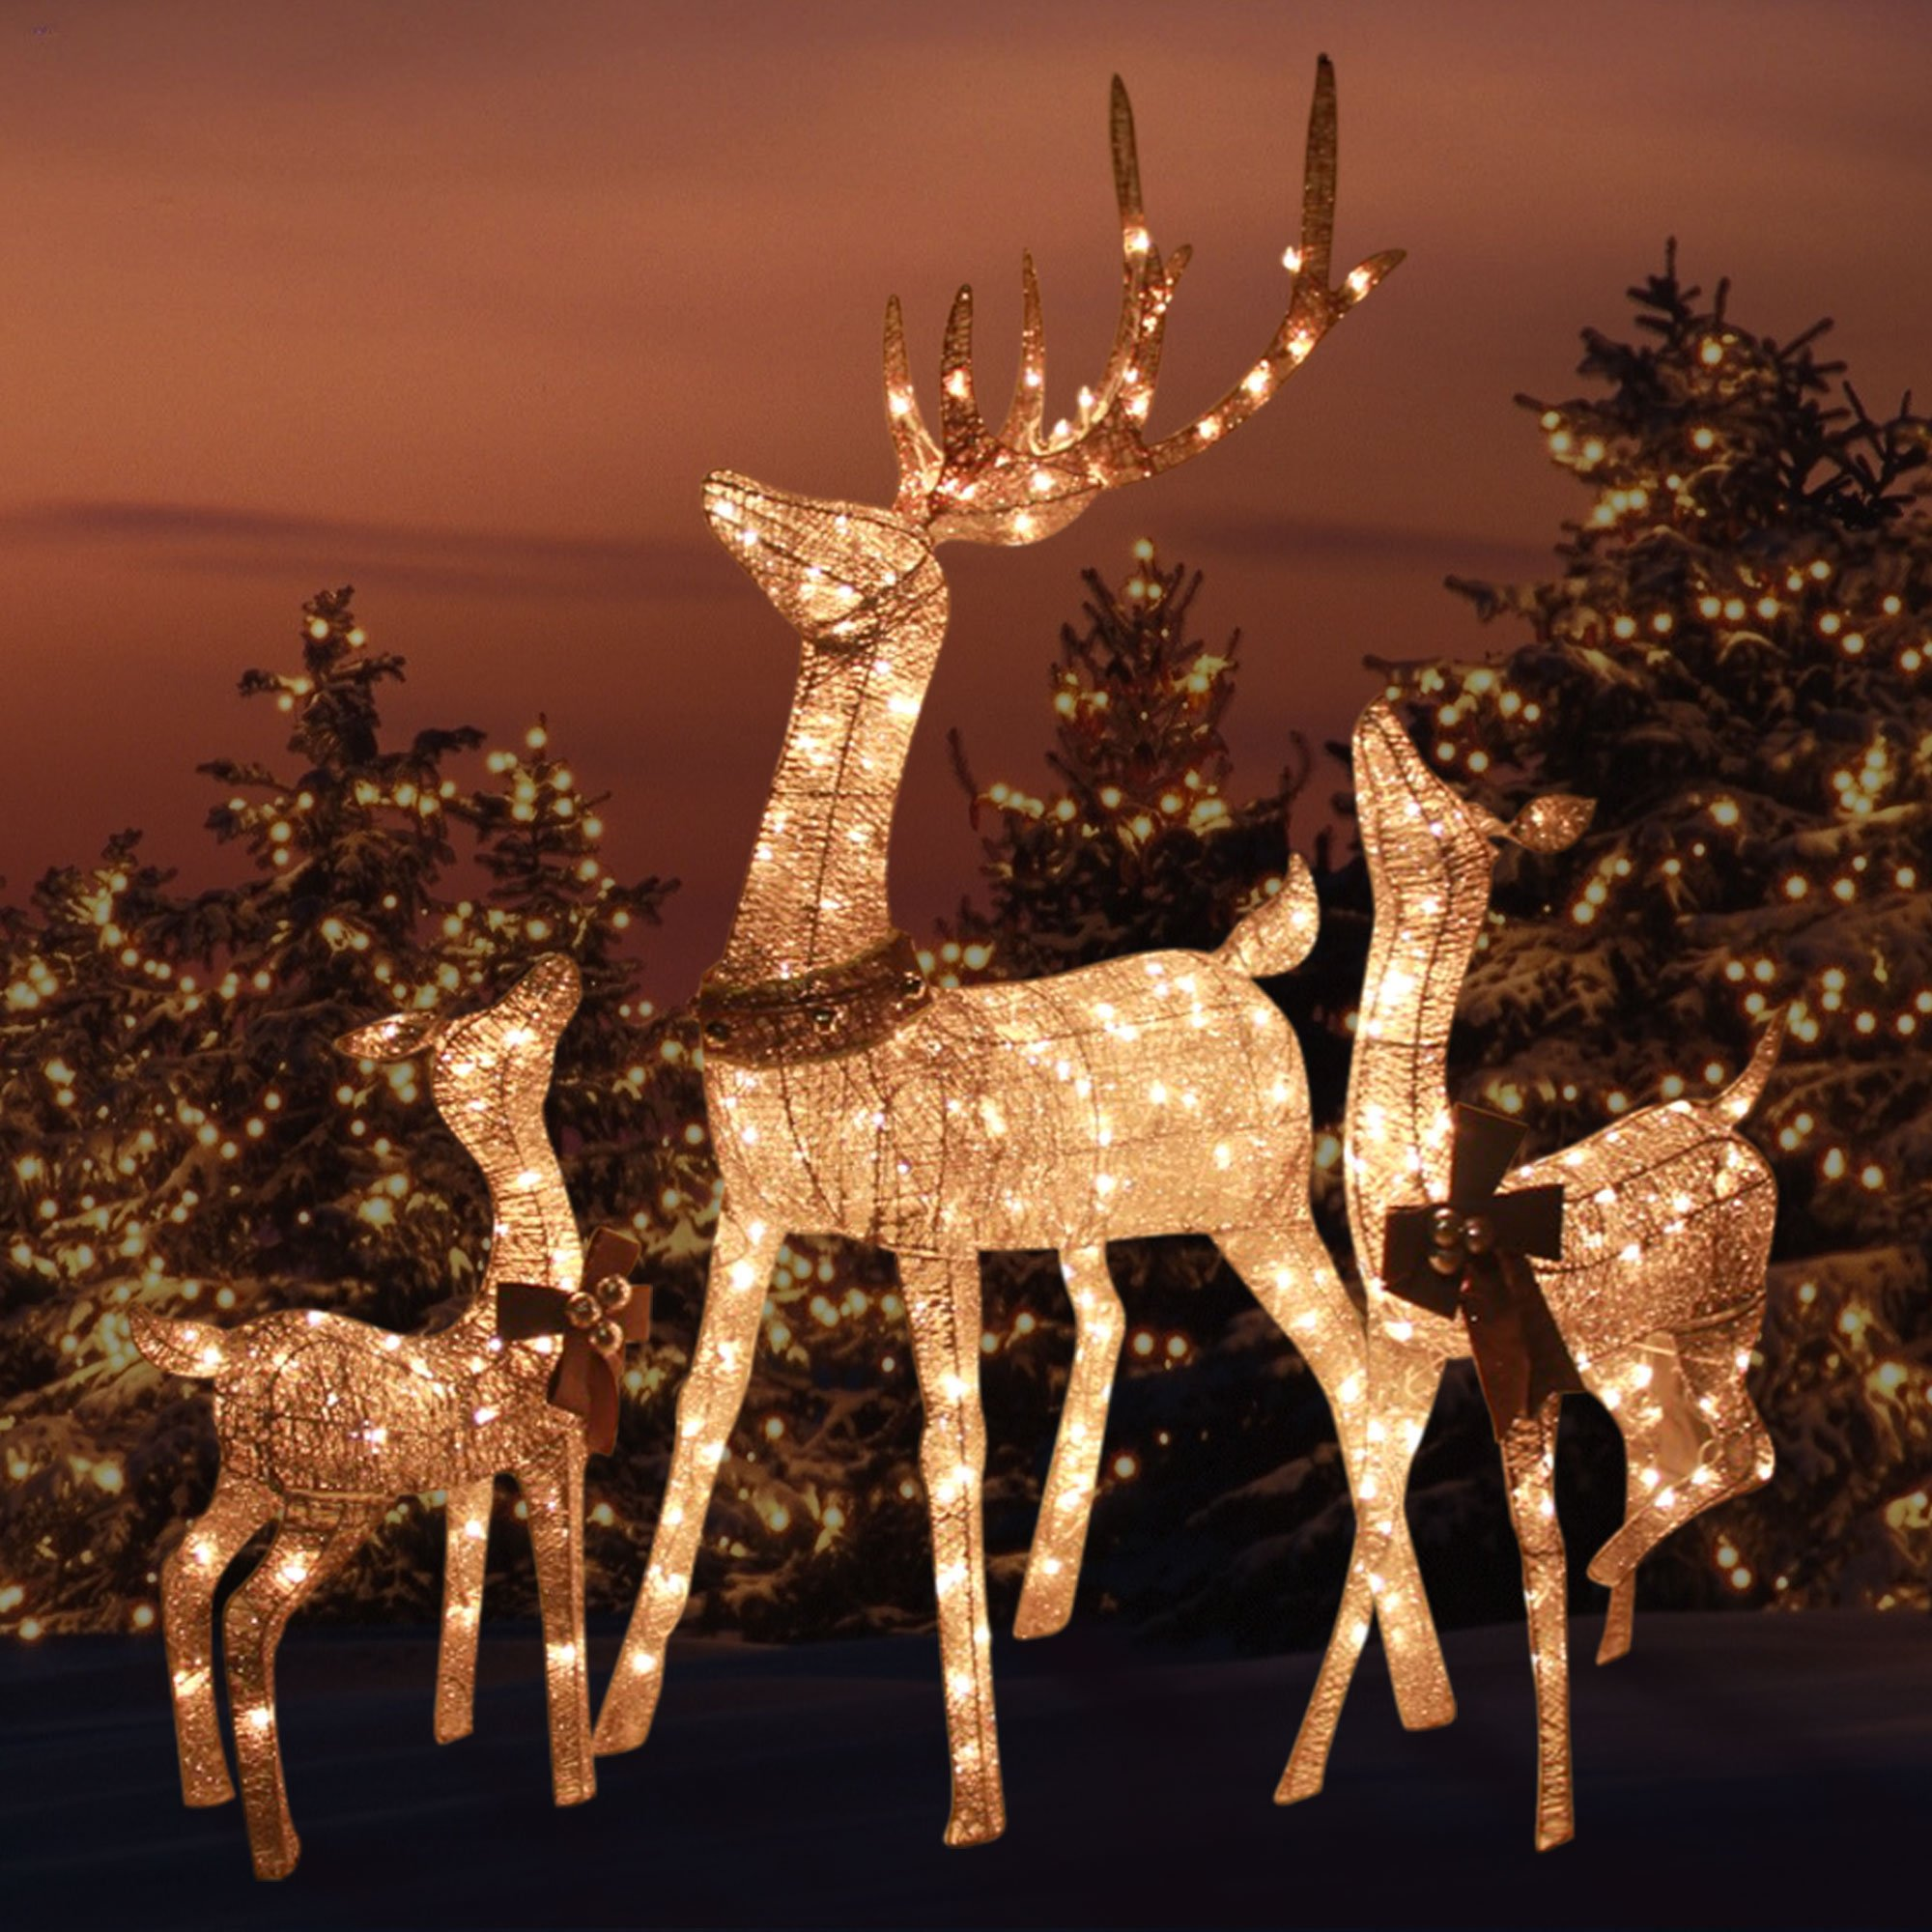 Outdoor Platinum Shimmer LIGHTED REINDEER FAMILY SET with Buck Deer, Doe and Baby Fawn, Santa's Reindeer Holiday Lawn Sculpture Lighted Yard Ornament Decoration by Morning Star Market